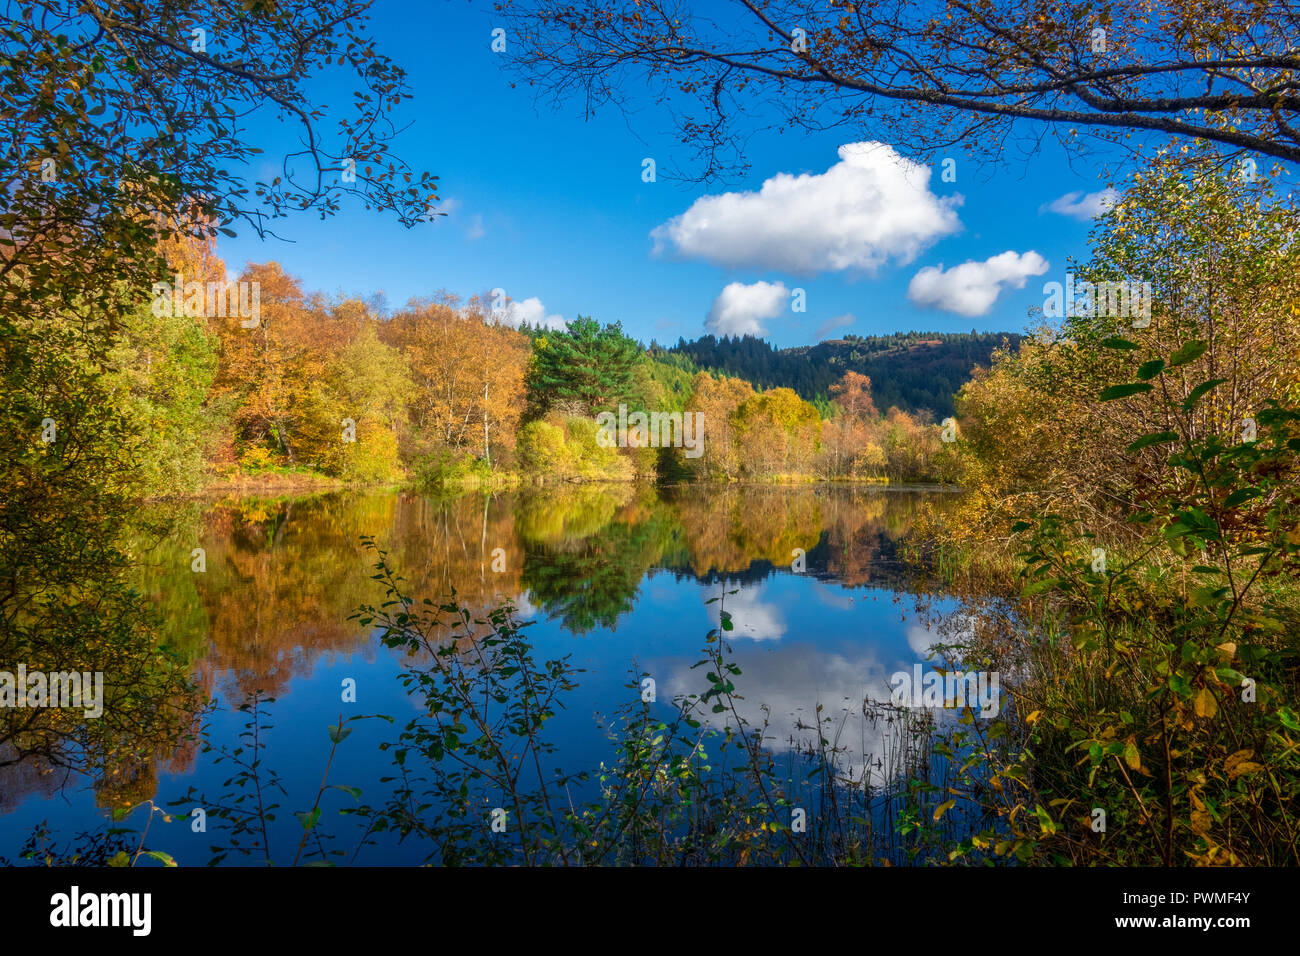 Autumn Trees on a Sunny Day in the Trossachs, Scotland, UK Stock Photo